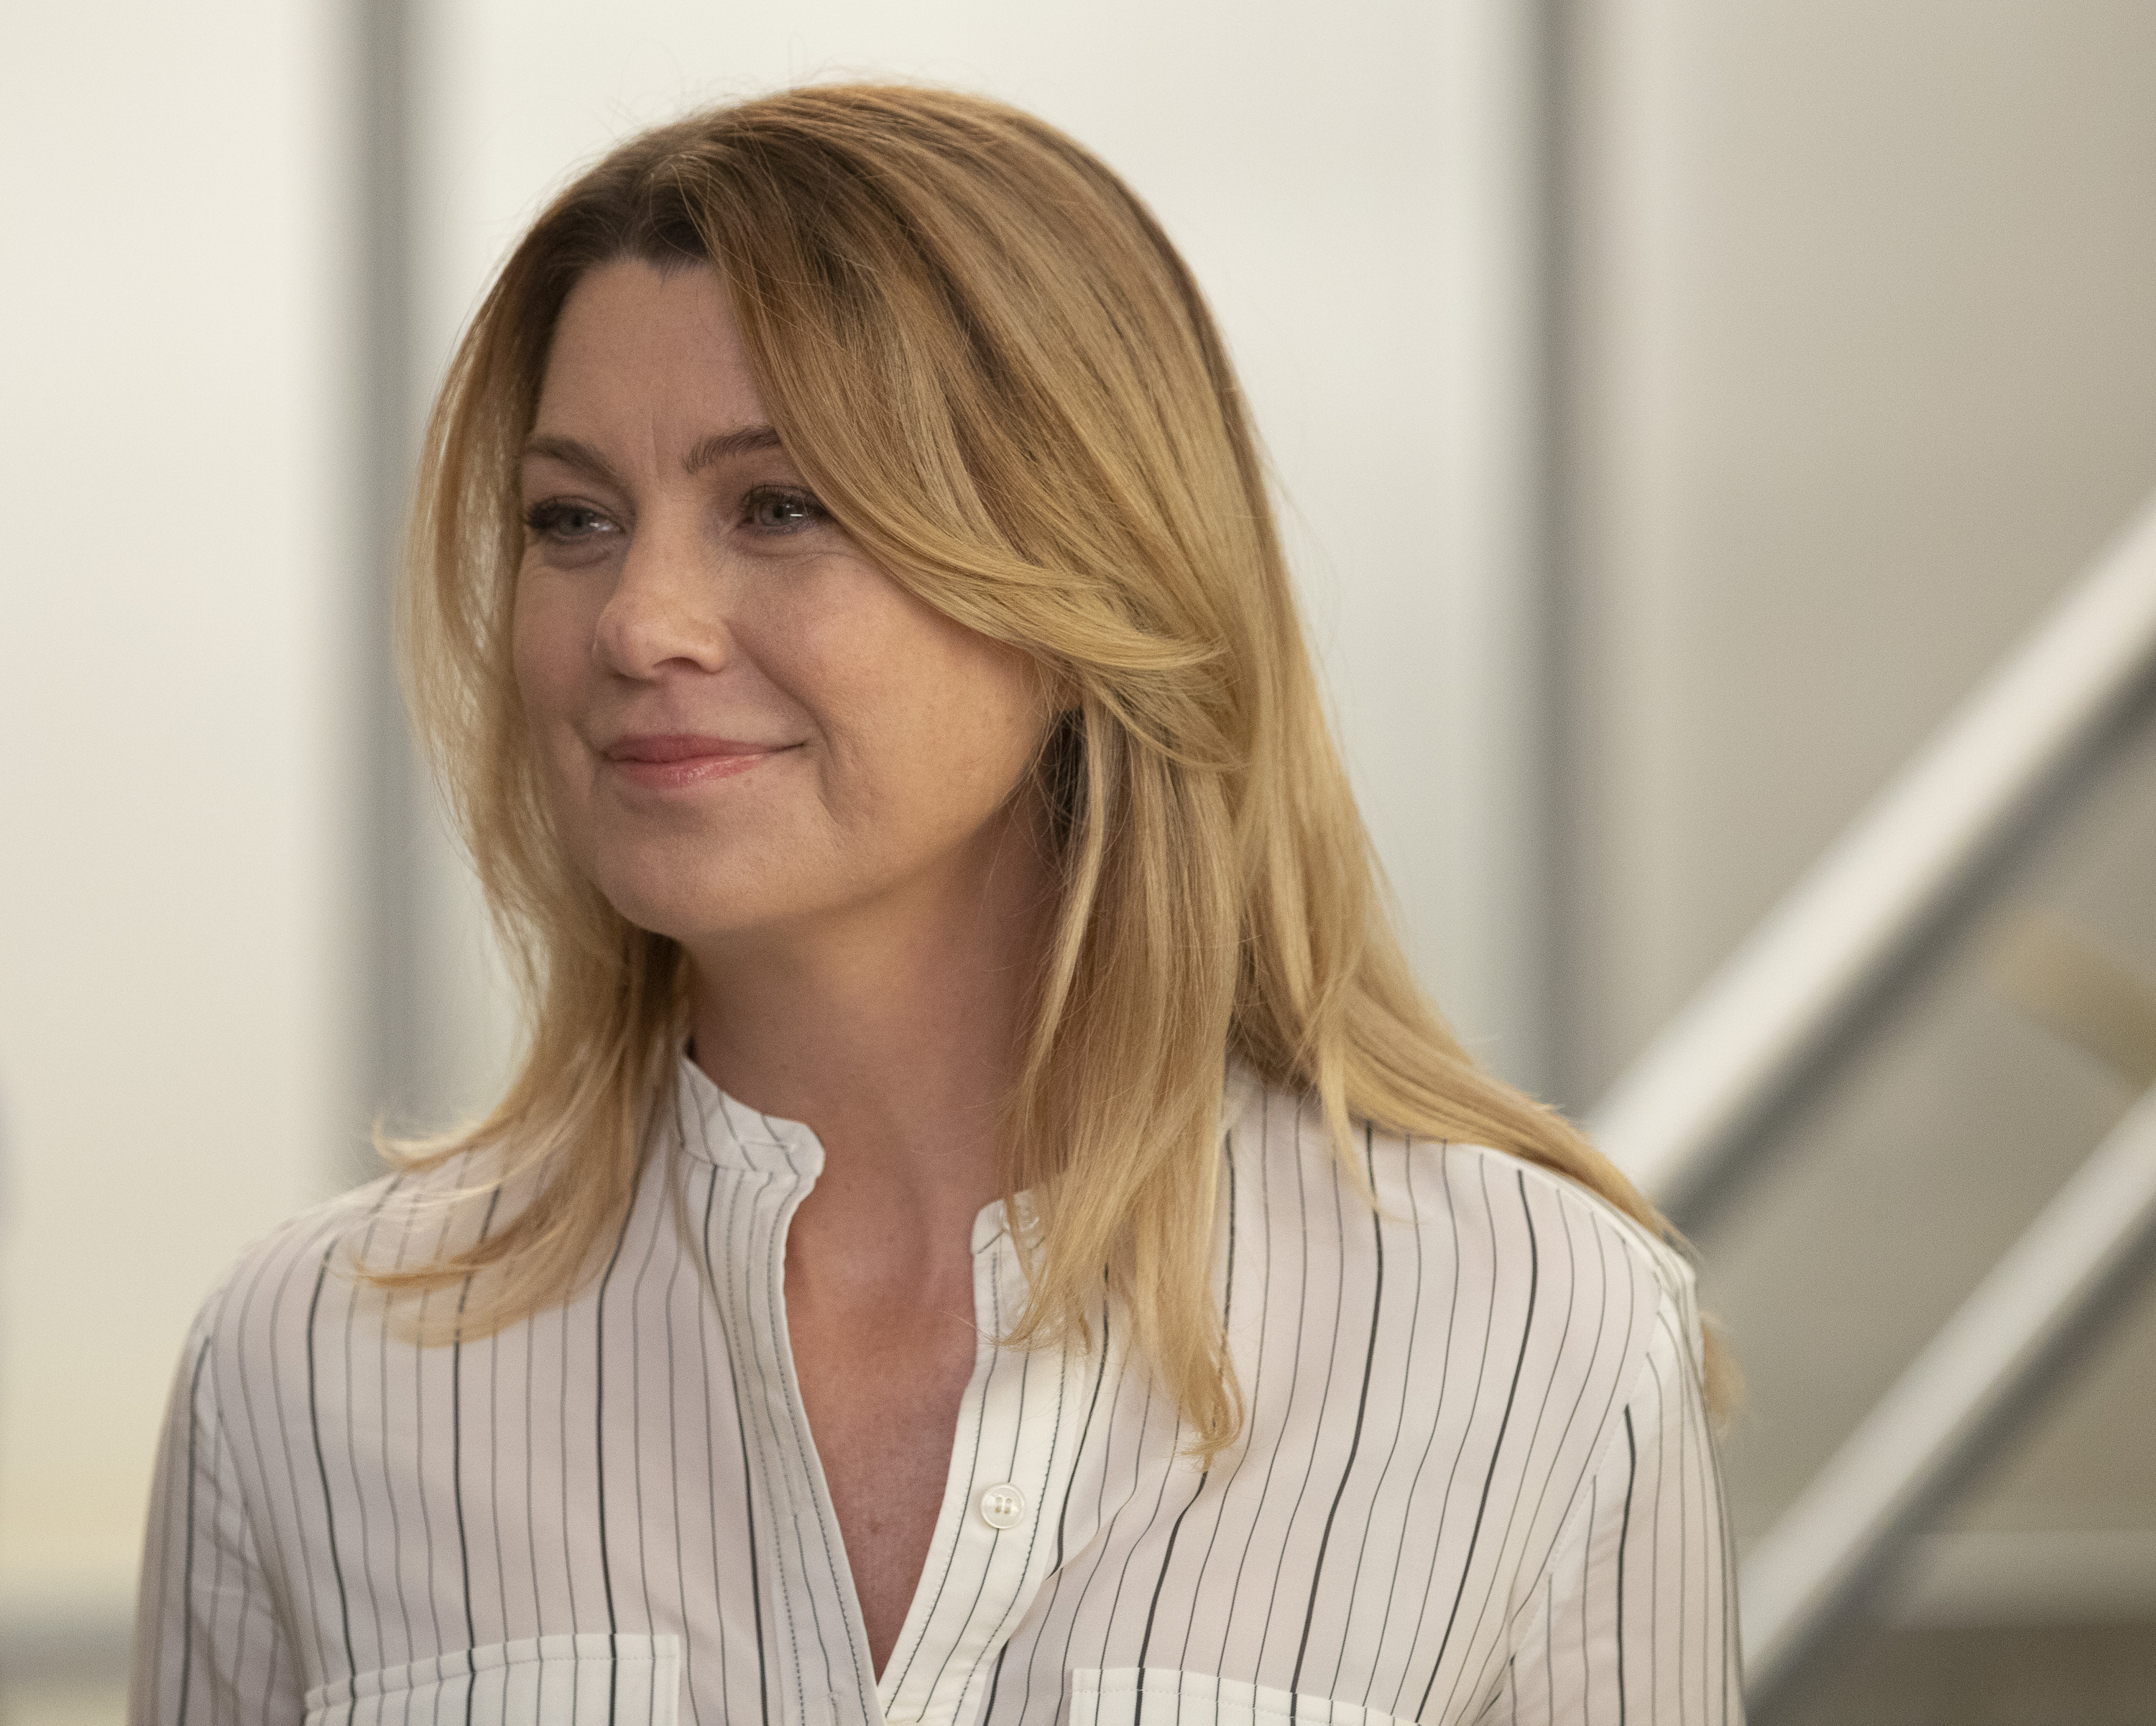 Meredith Grey half smiling, Grey's Anatomy 093018